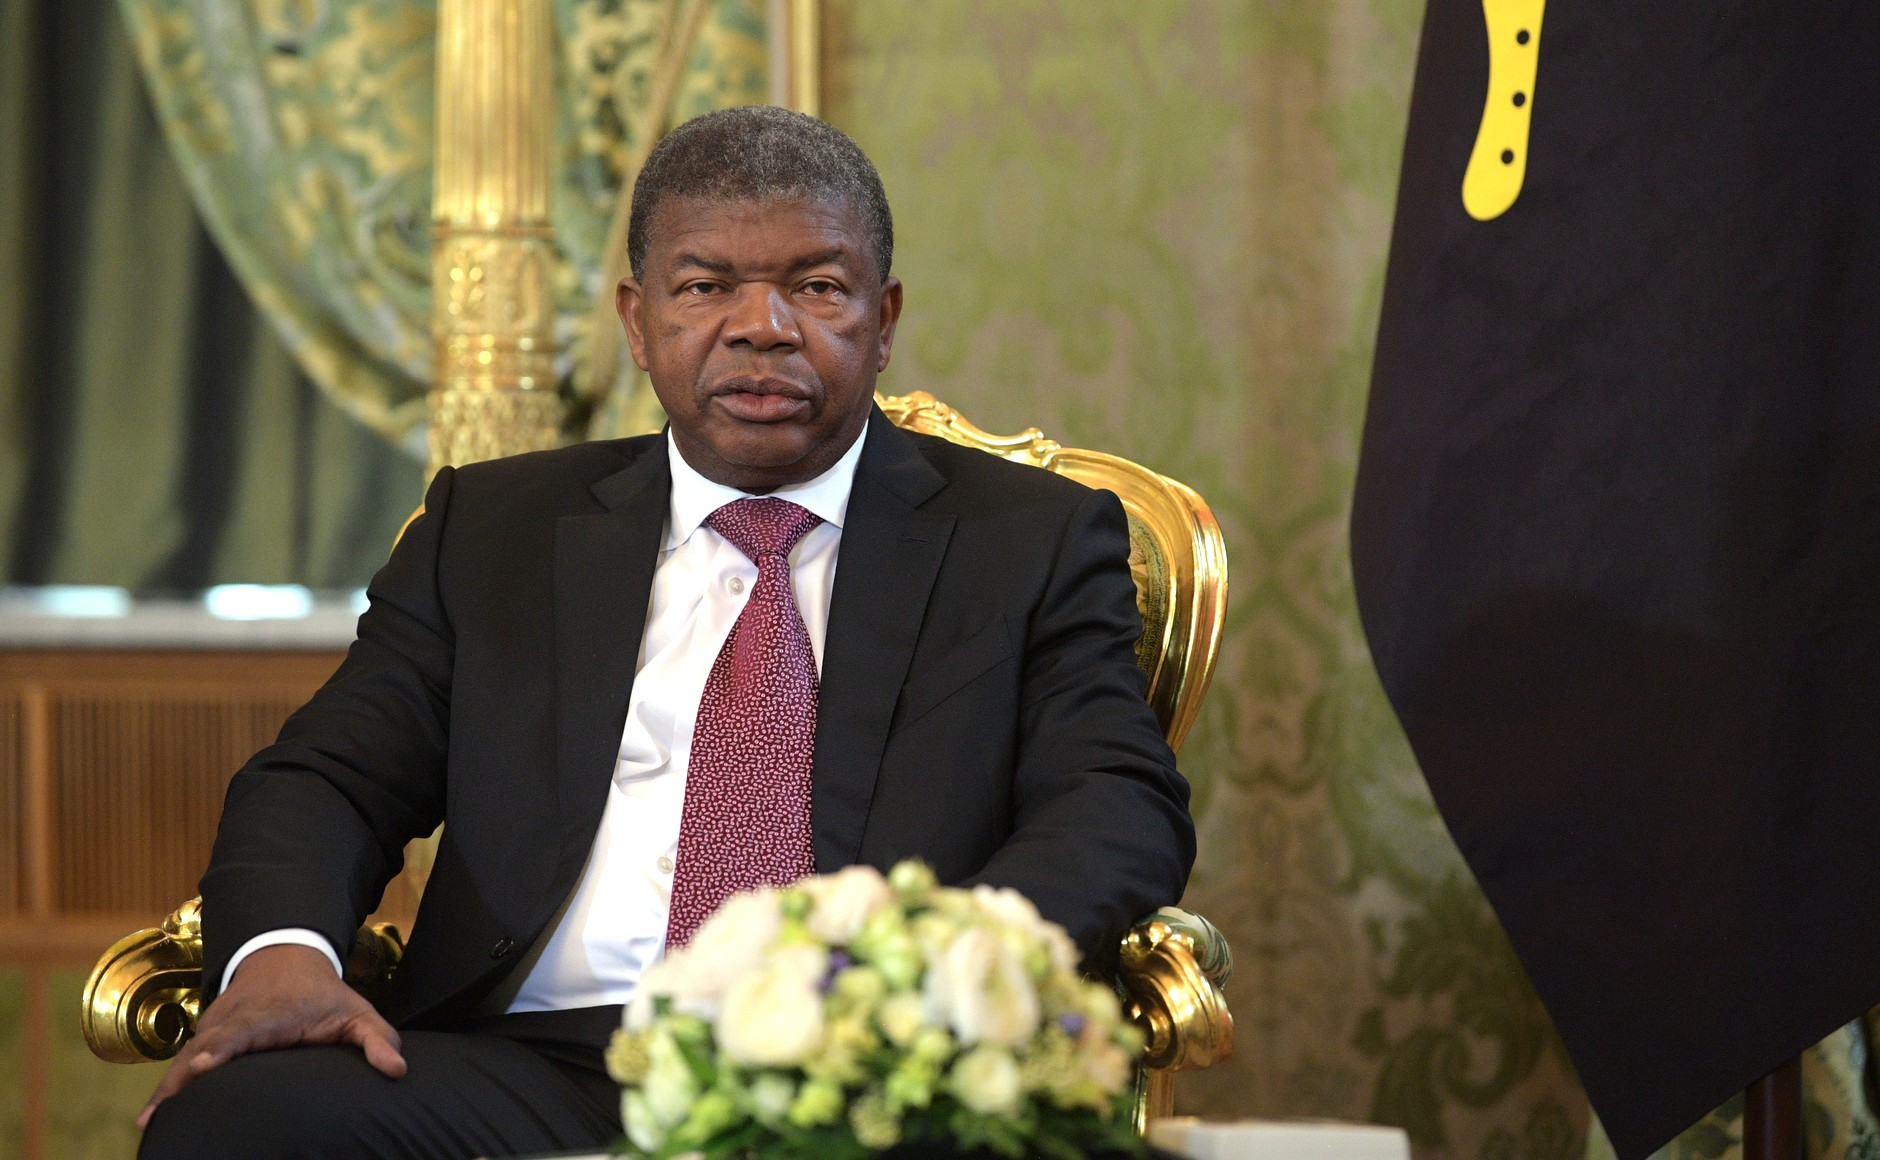 Photo: President of Angola Joao Lourenco.